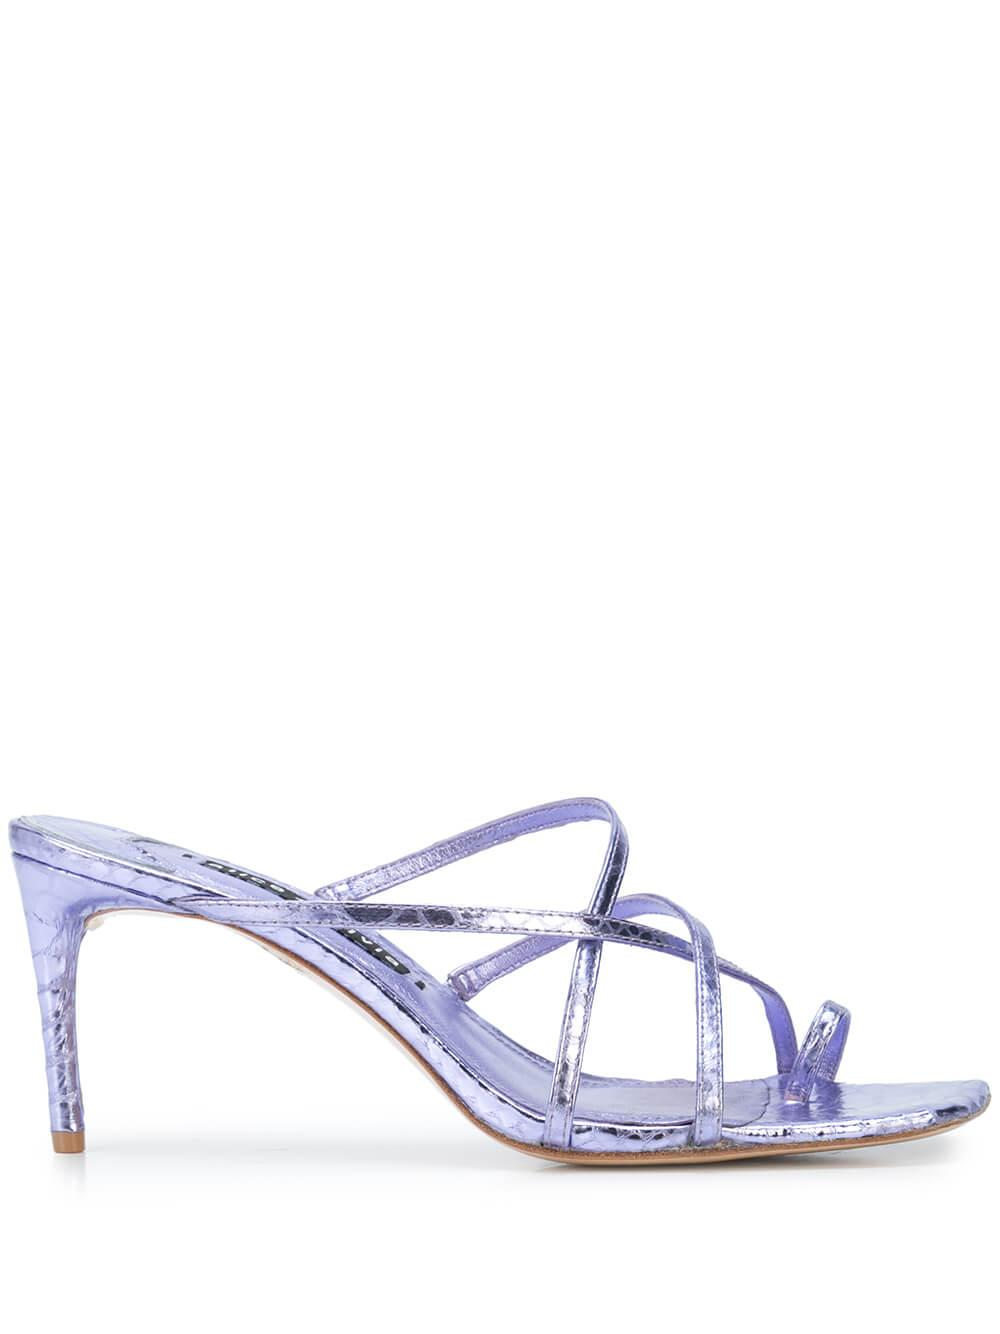 Strappy Square Toe Sandal